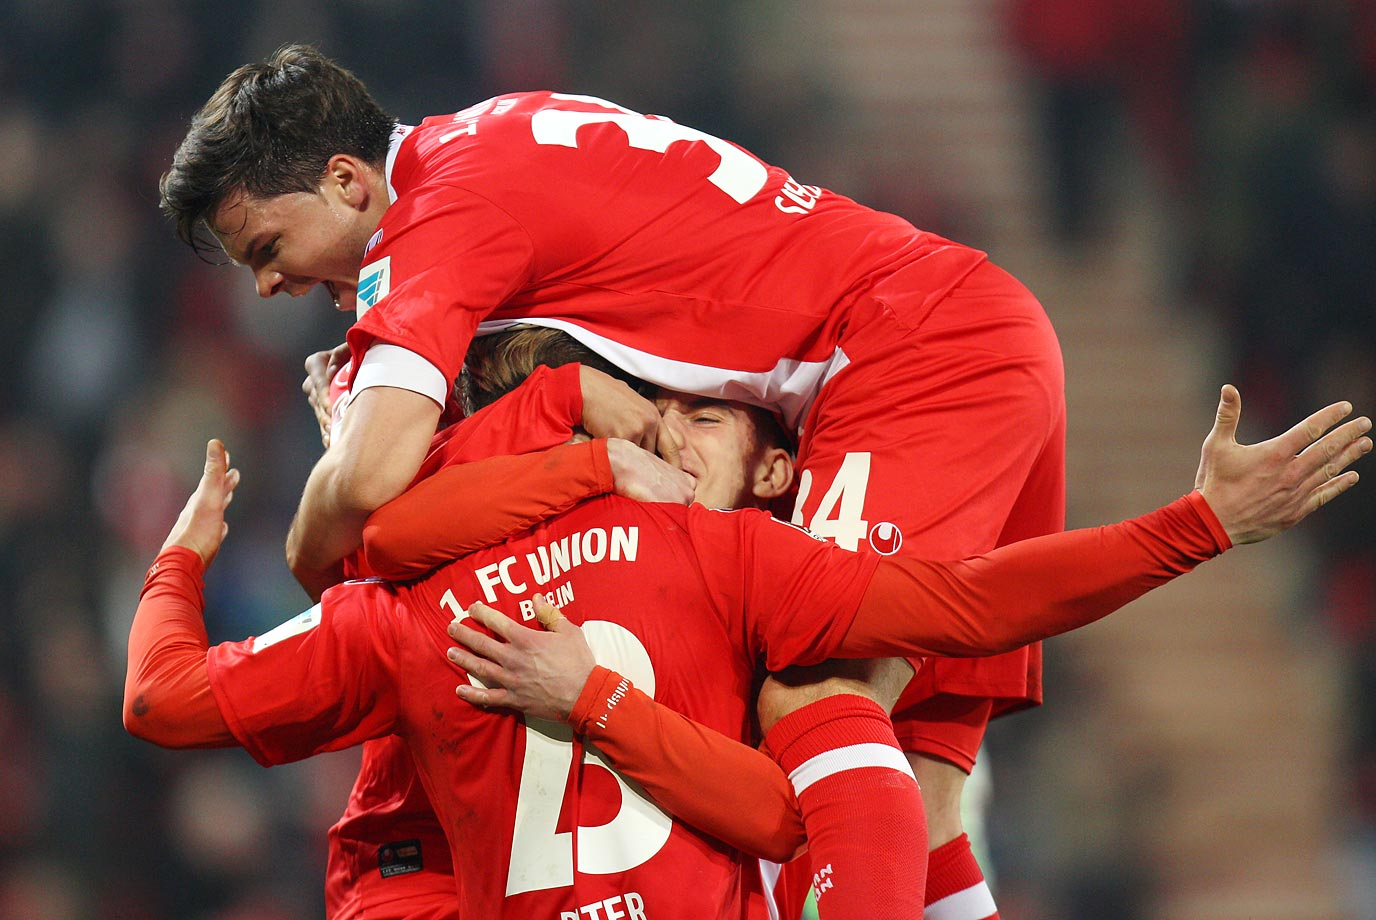 Sebastian Polter, Valmir Sulejmani and Fabian Schoenheim of 1 FC Union Berlin celebrate during a match against FC St. Pauli.